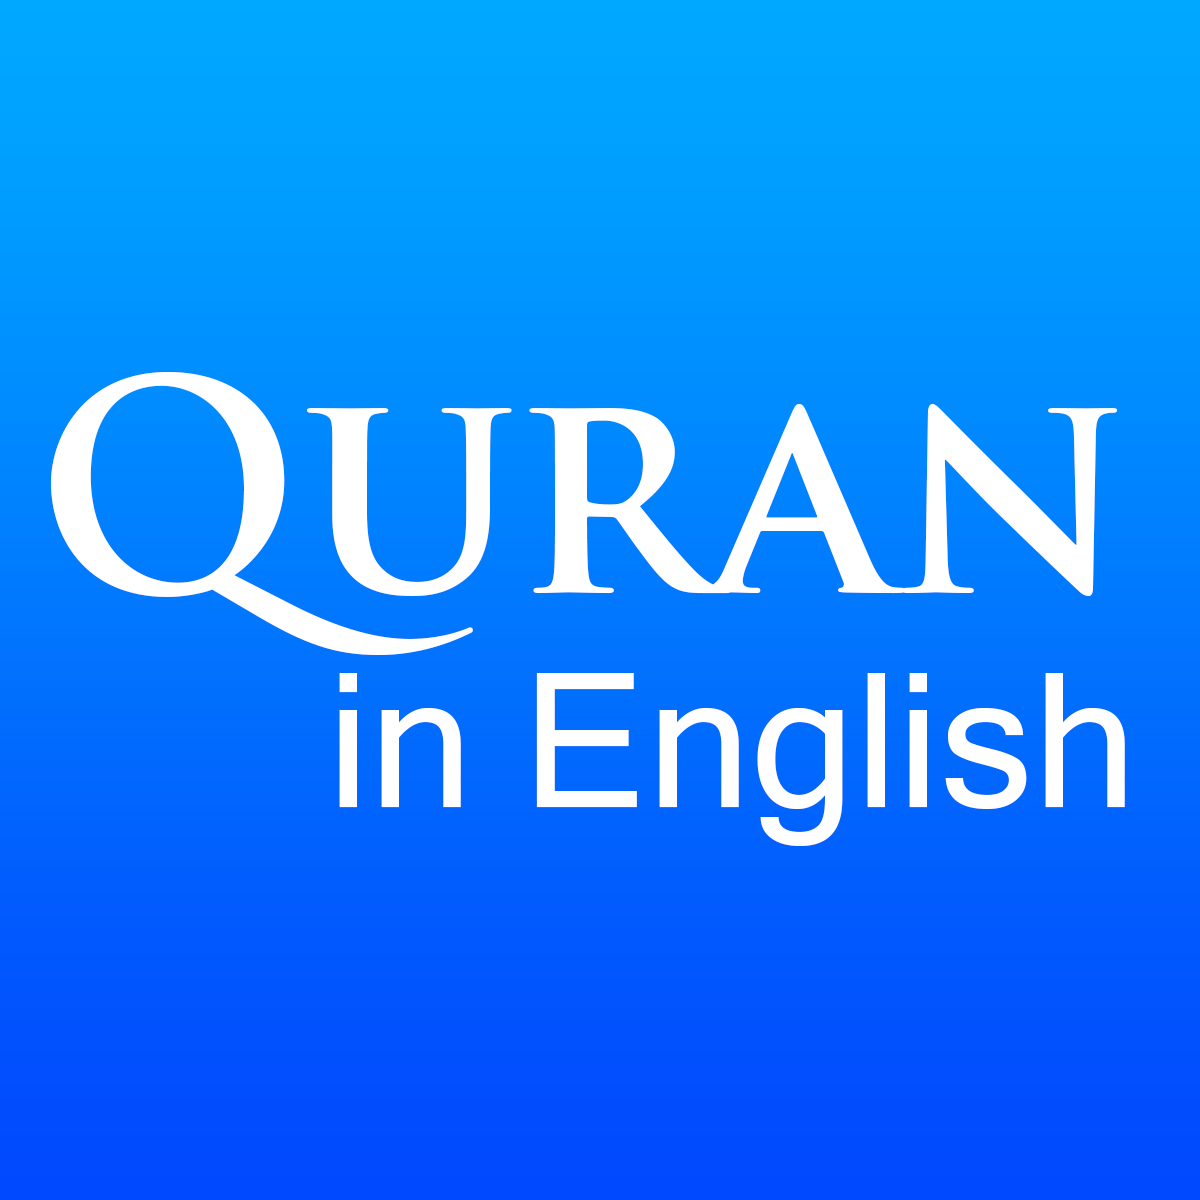 Perhaps the Best Quran English Translation. Clear, Pure